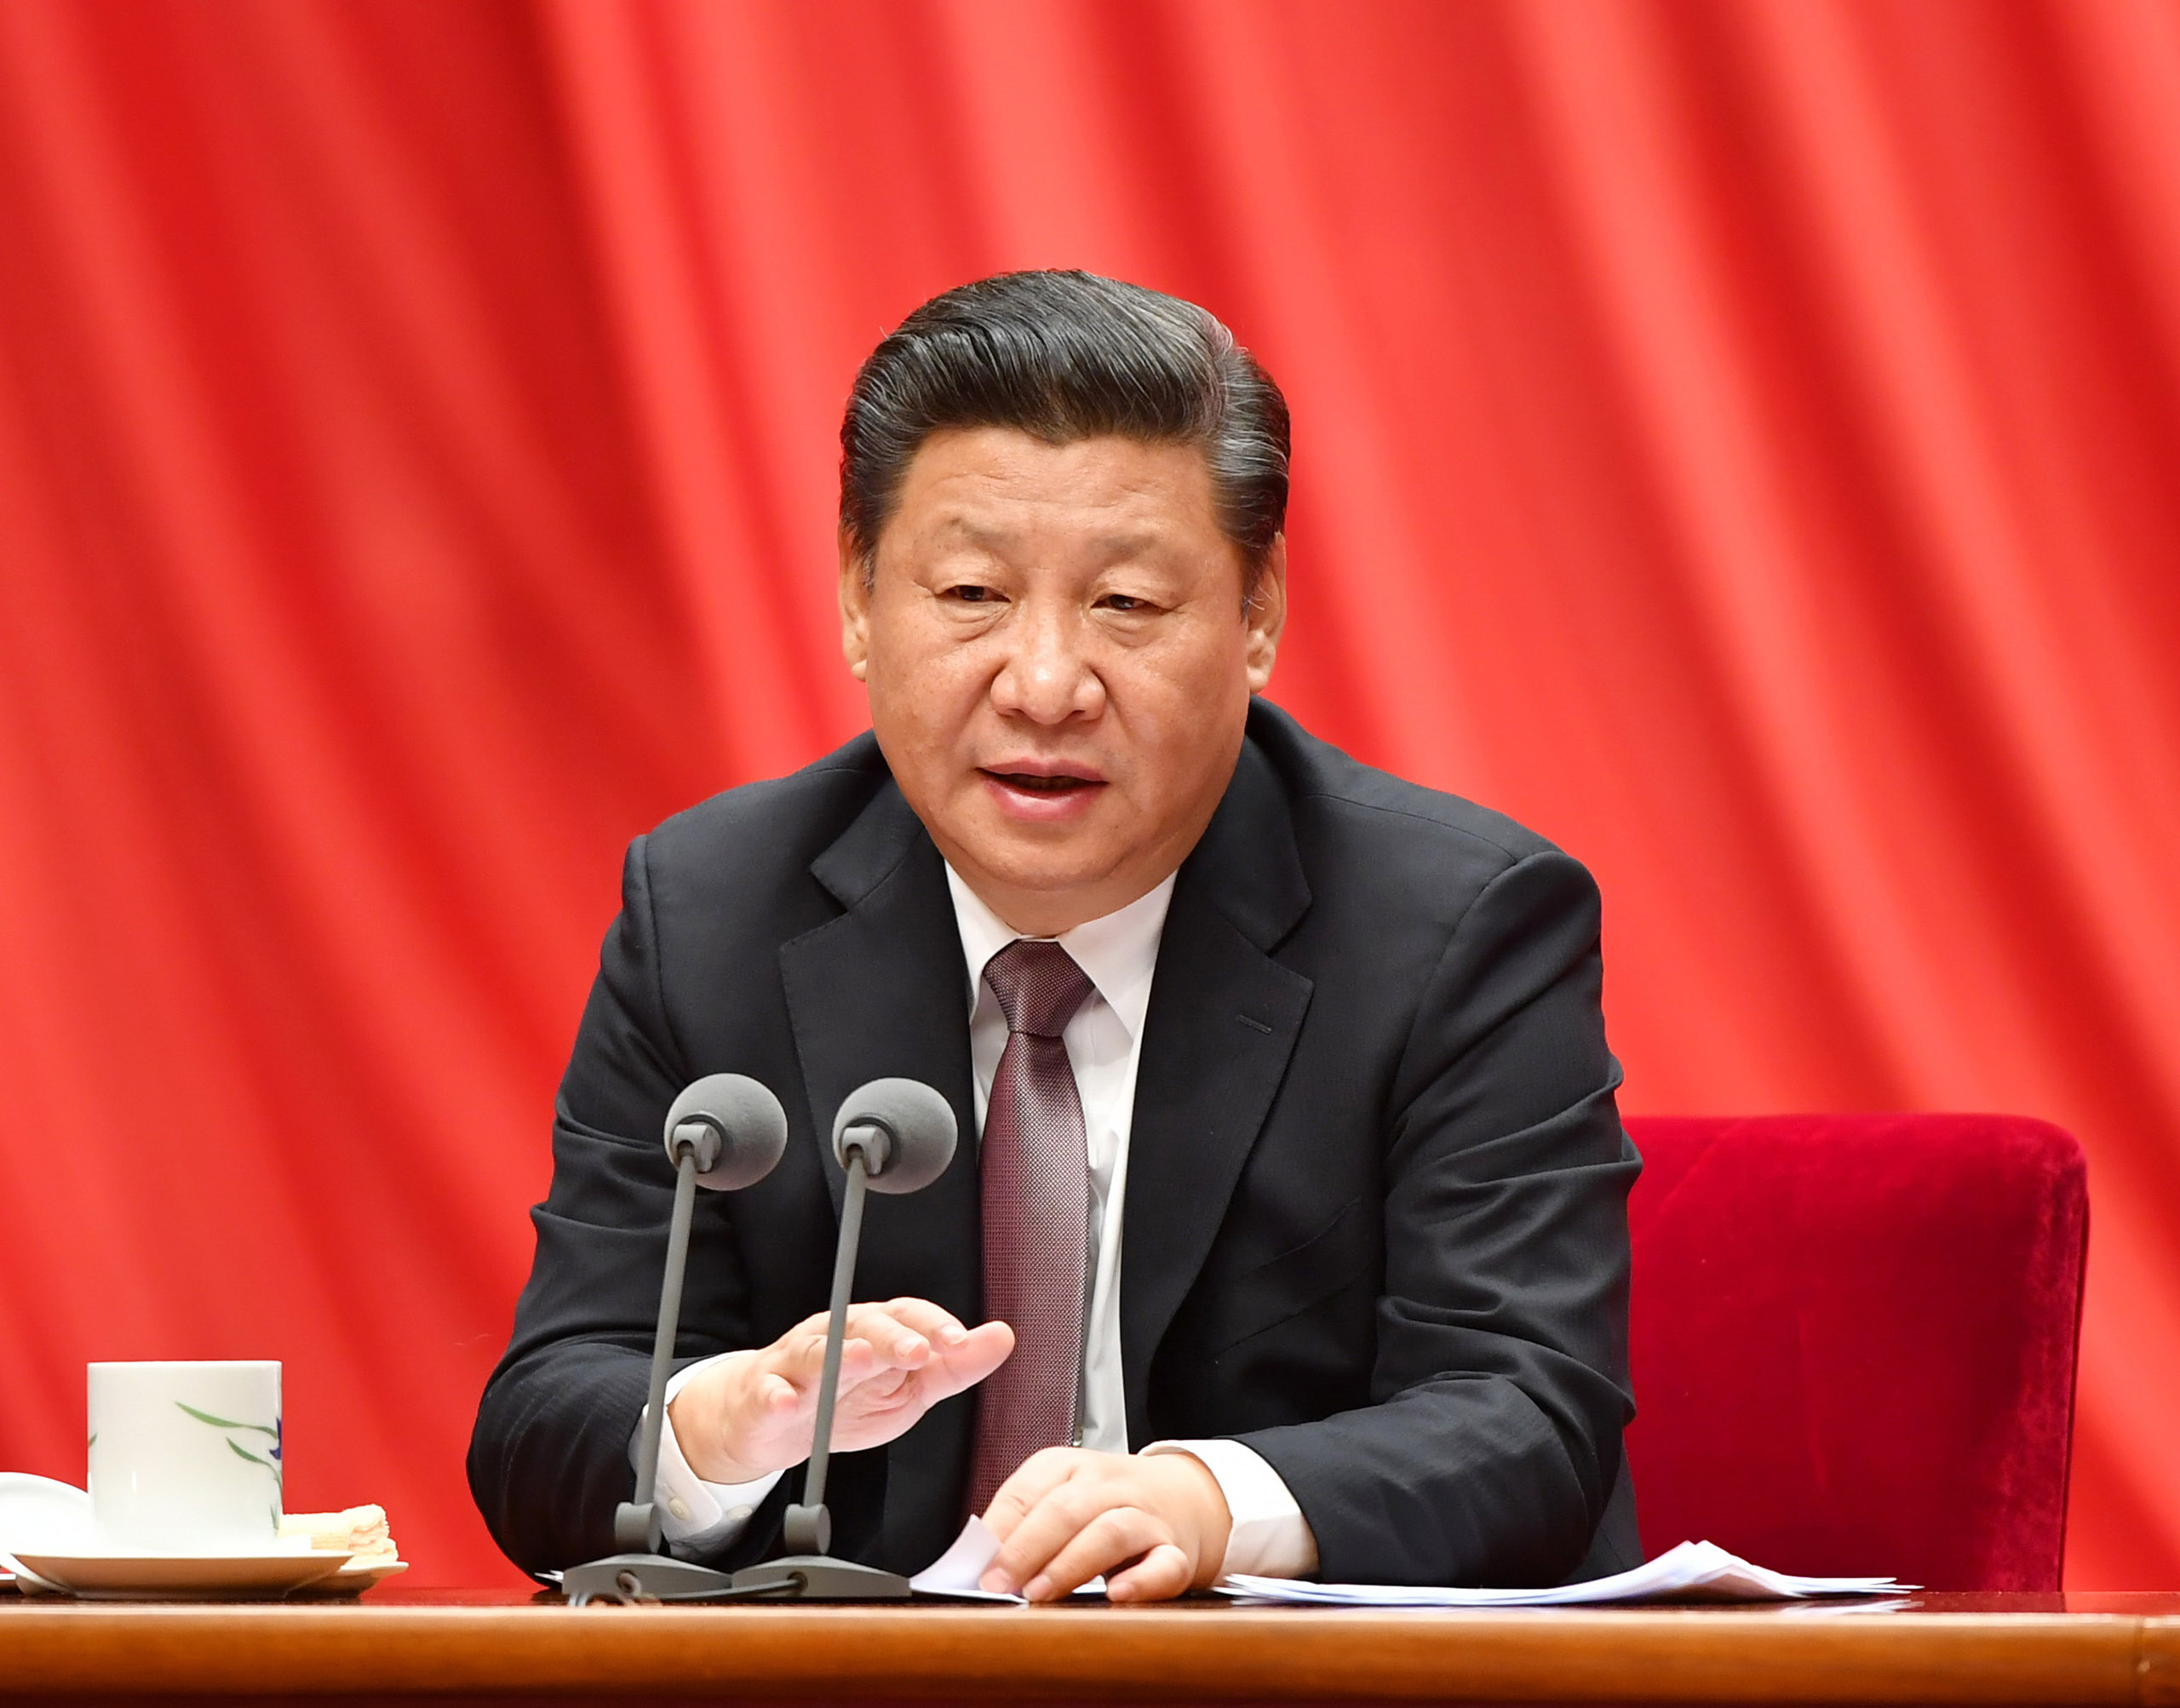 Chinese President Xi Jinping speaks at the seventh plenary session of the 18th Communist Party of China Central Commission for Discipline Inspection, on Jan. 6, 2017.